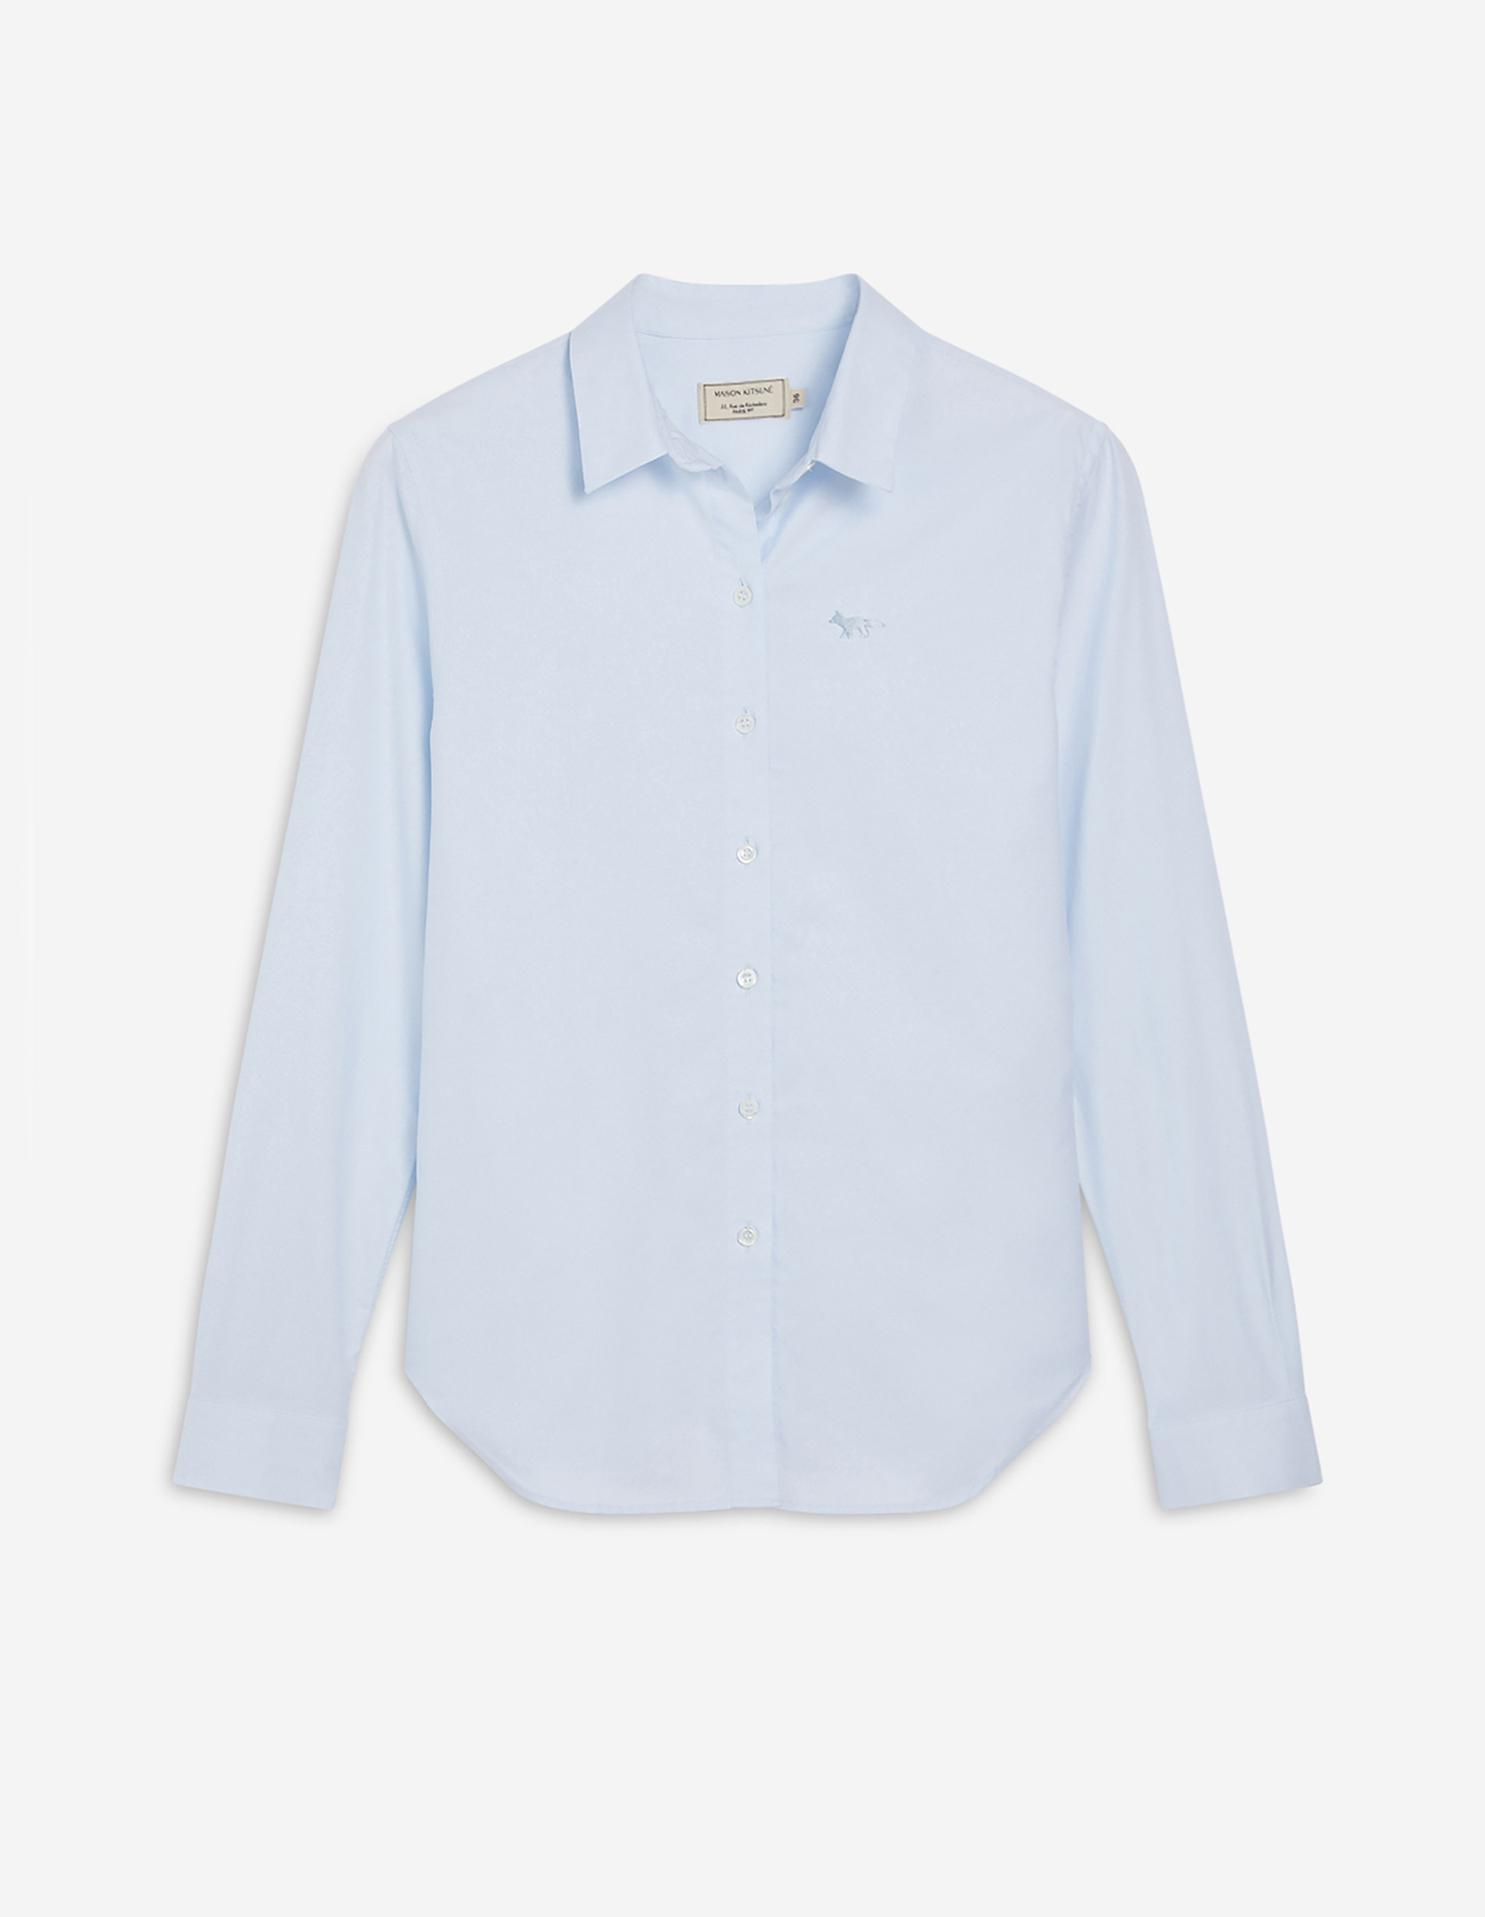 FOX EMBROIDERY CLASSIC SHIRT 2